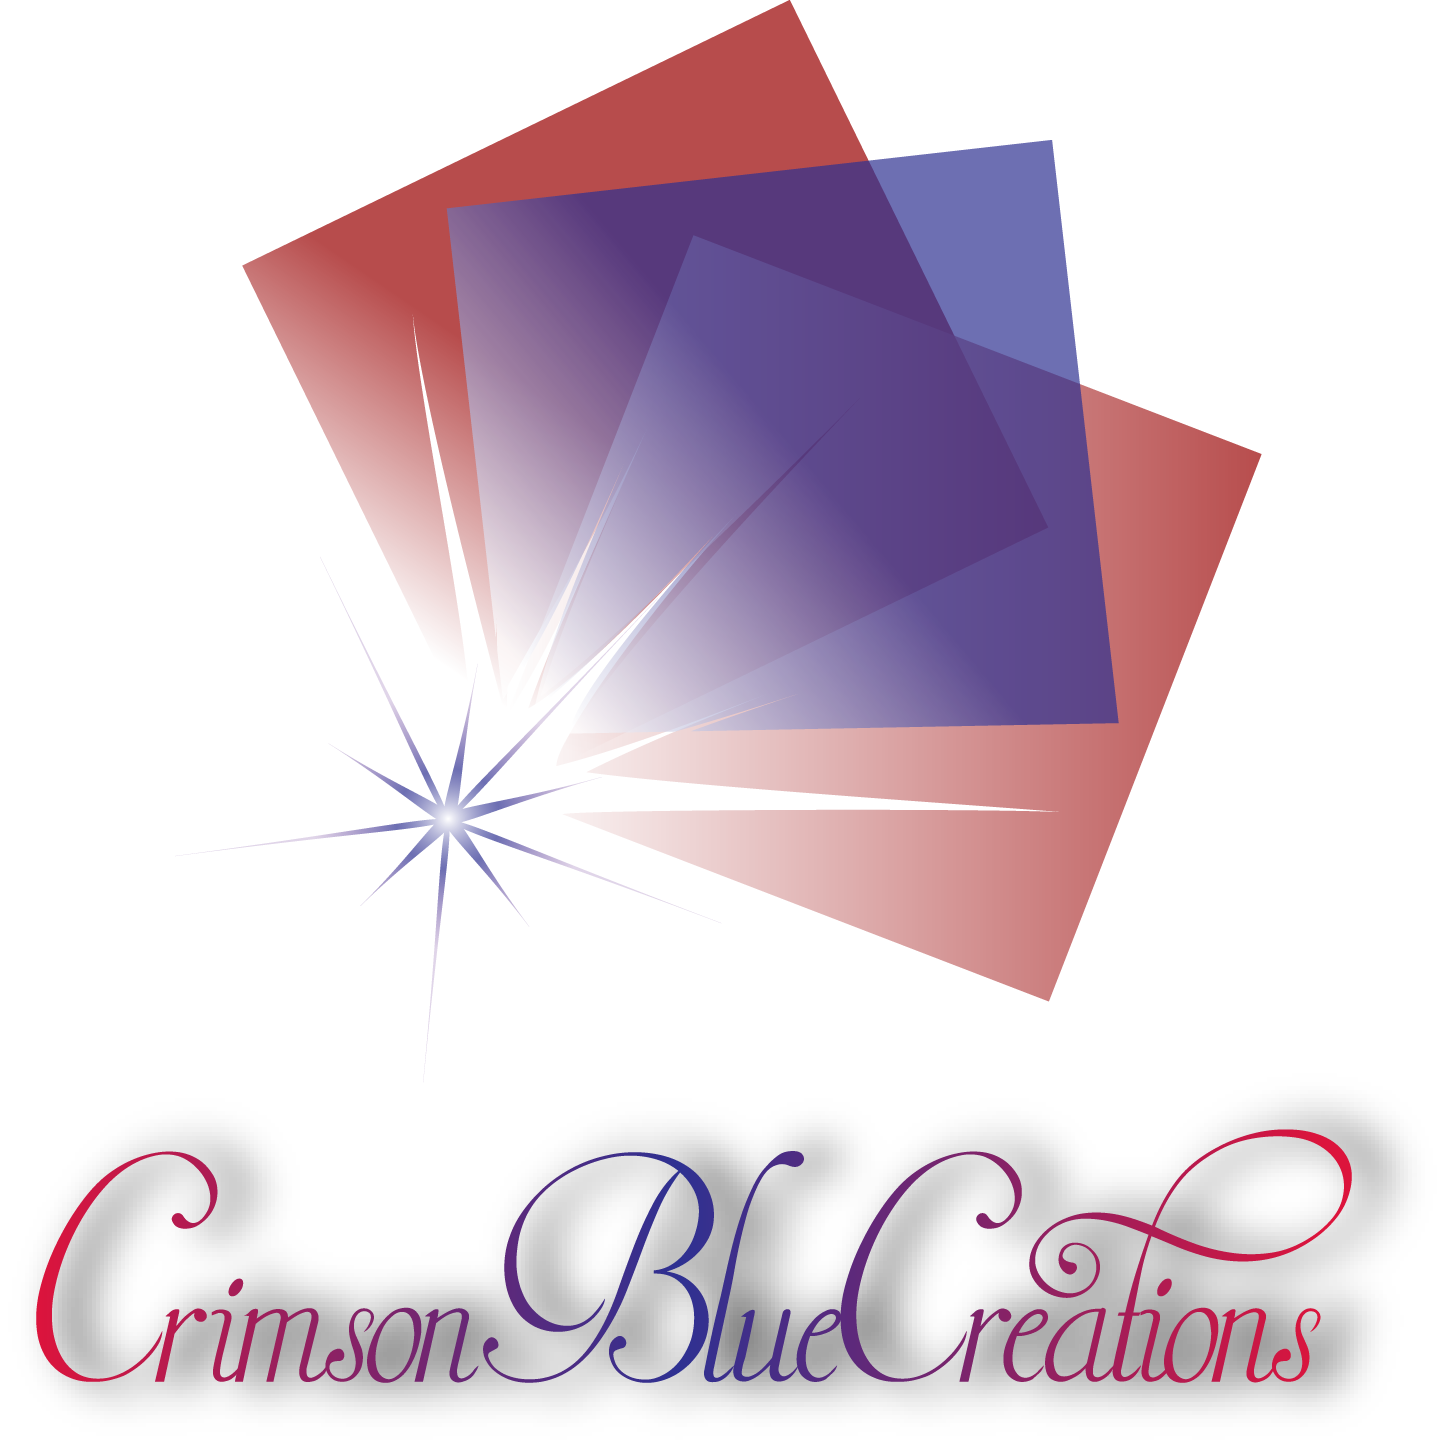 Crimson Blue Creations Advertising & Events Logo